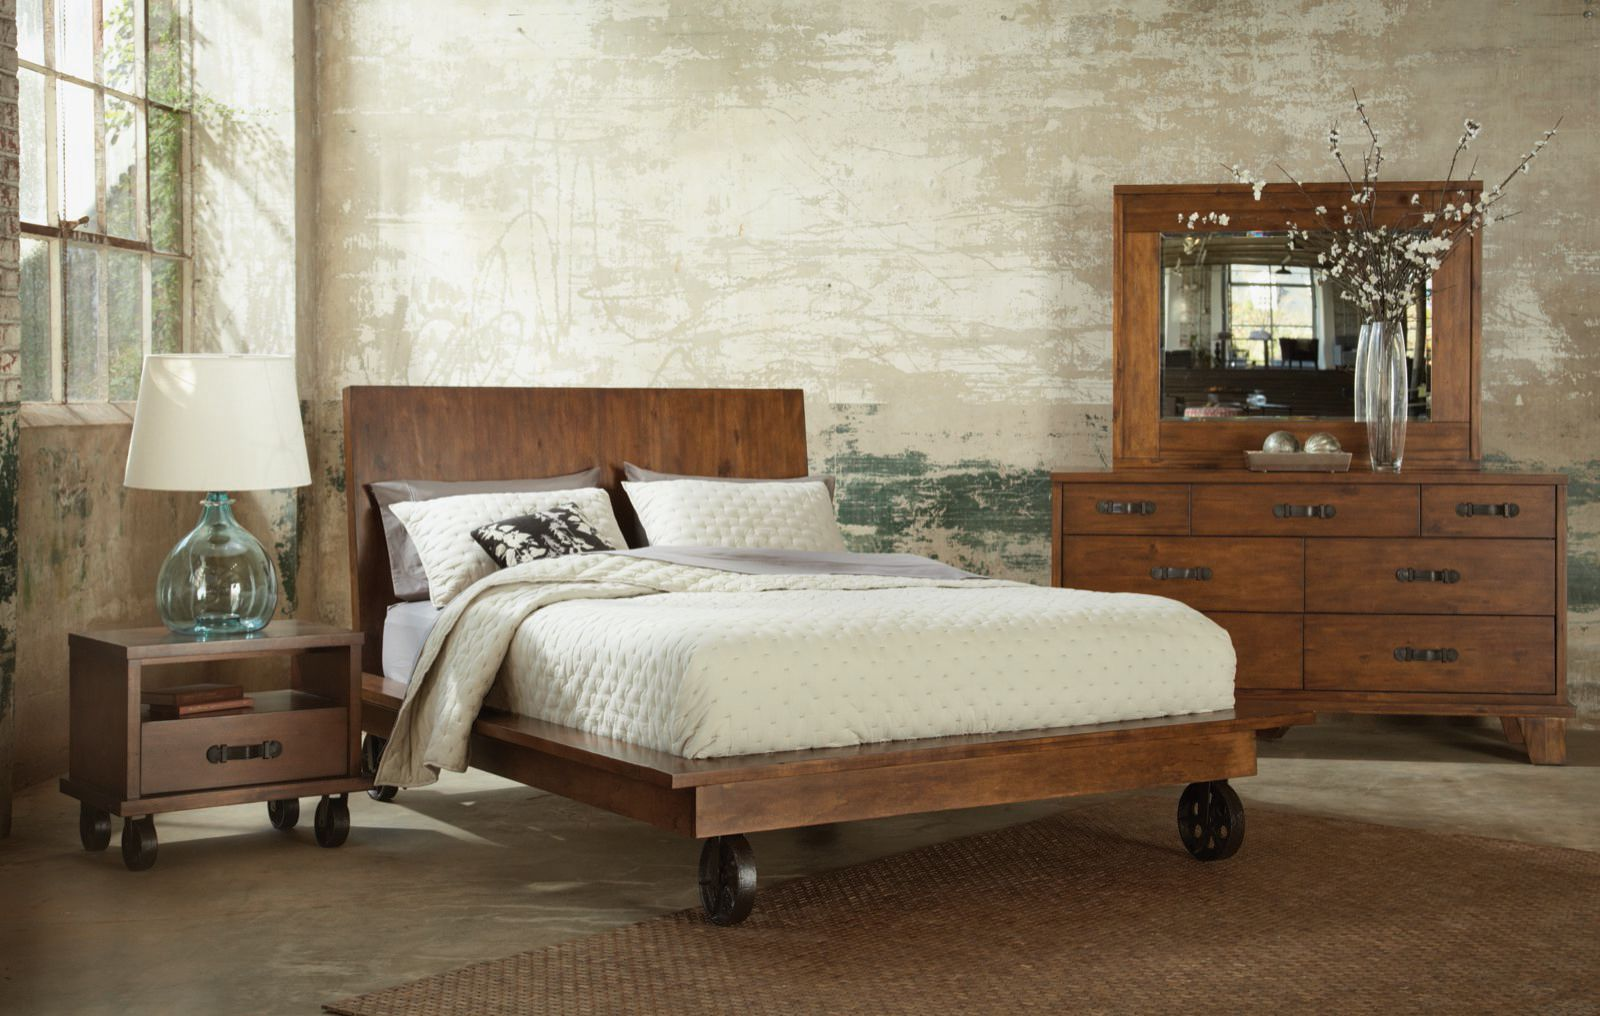 Platform Bed With Iron Wheels Via Livingincomfort Com Wheels Can